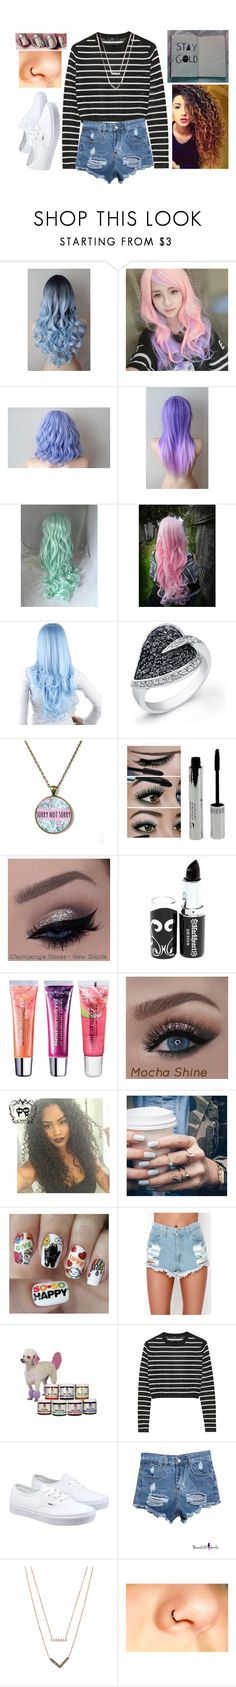 """0274"" by doglover43 ❤ liked on Polyvore featuring Clair Beauty, Cotton Candy, Hot Topic, Maybelline, Floss Gloss, Nail Pop, WithChic, Estée Lauder, TIBI and Vans"